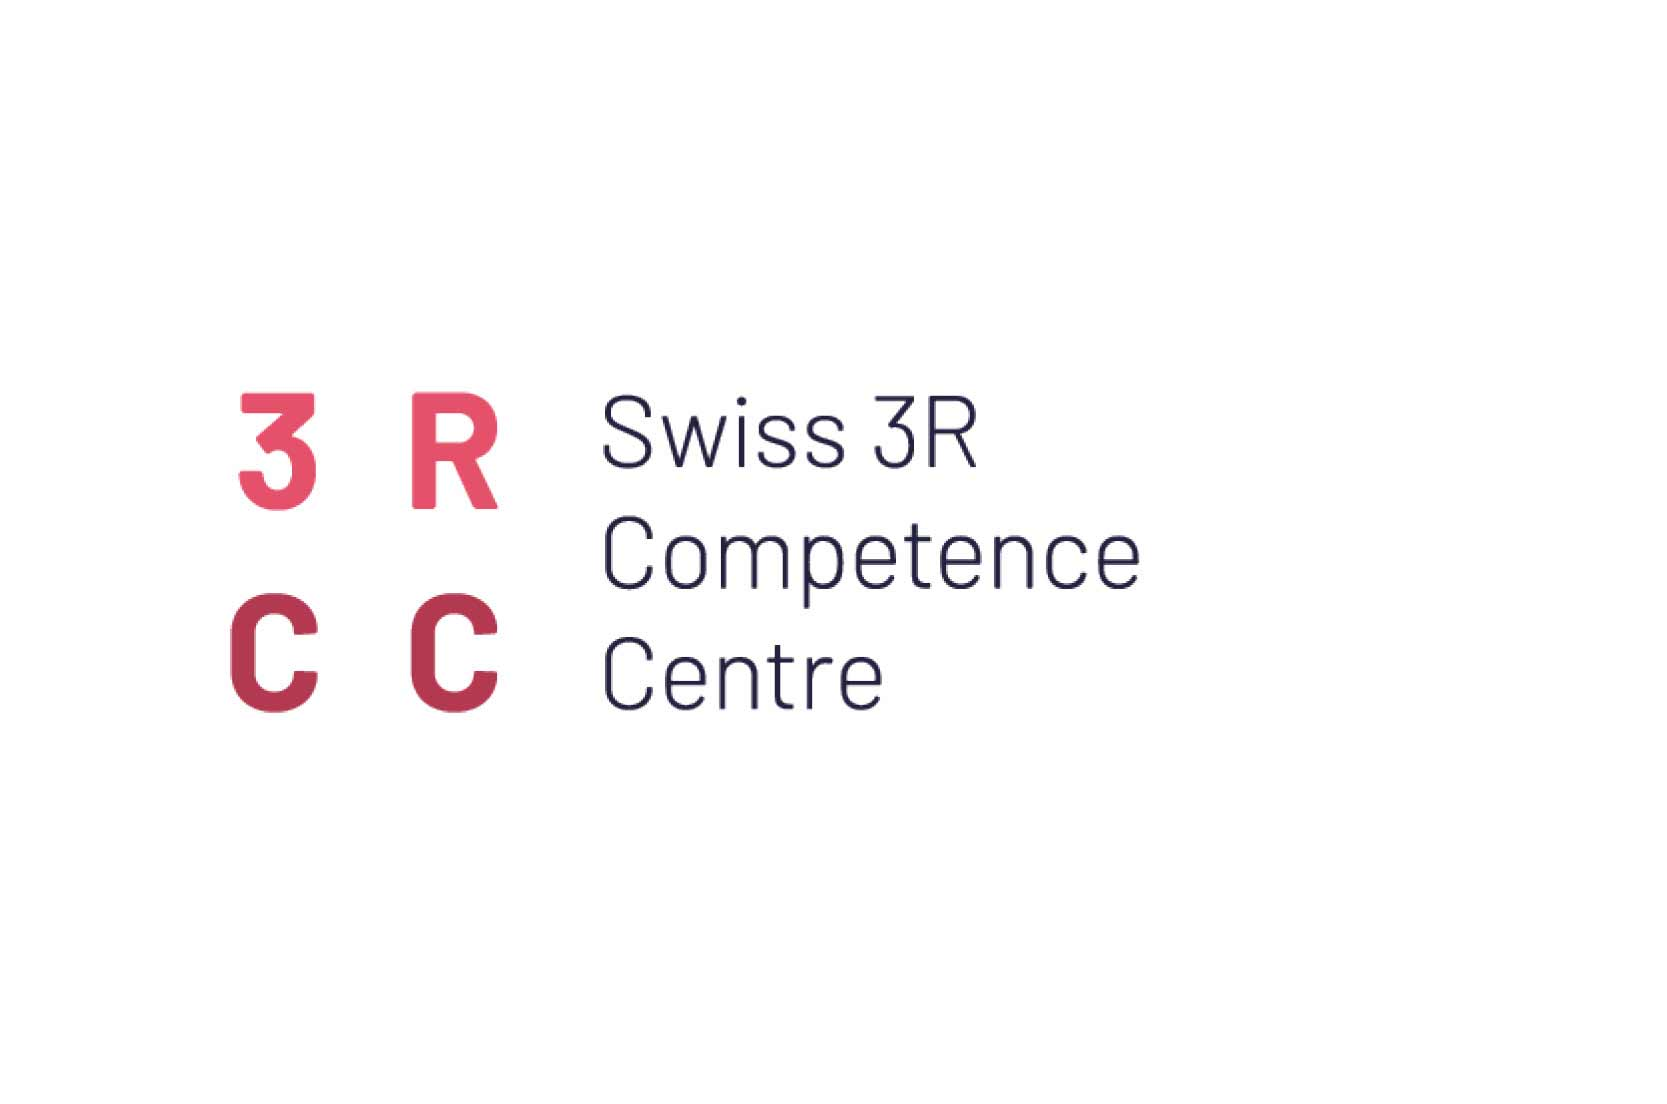 Swiss 3R Competence Centre